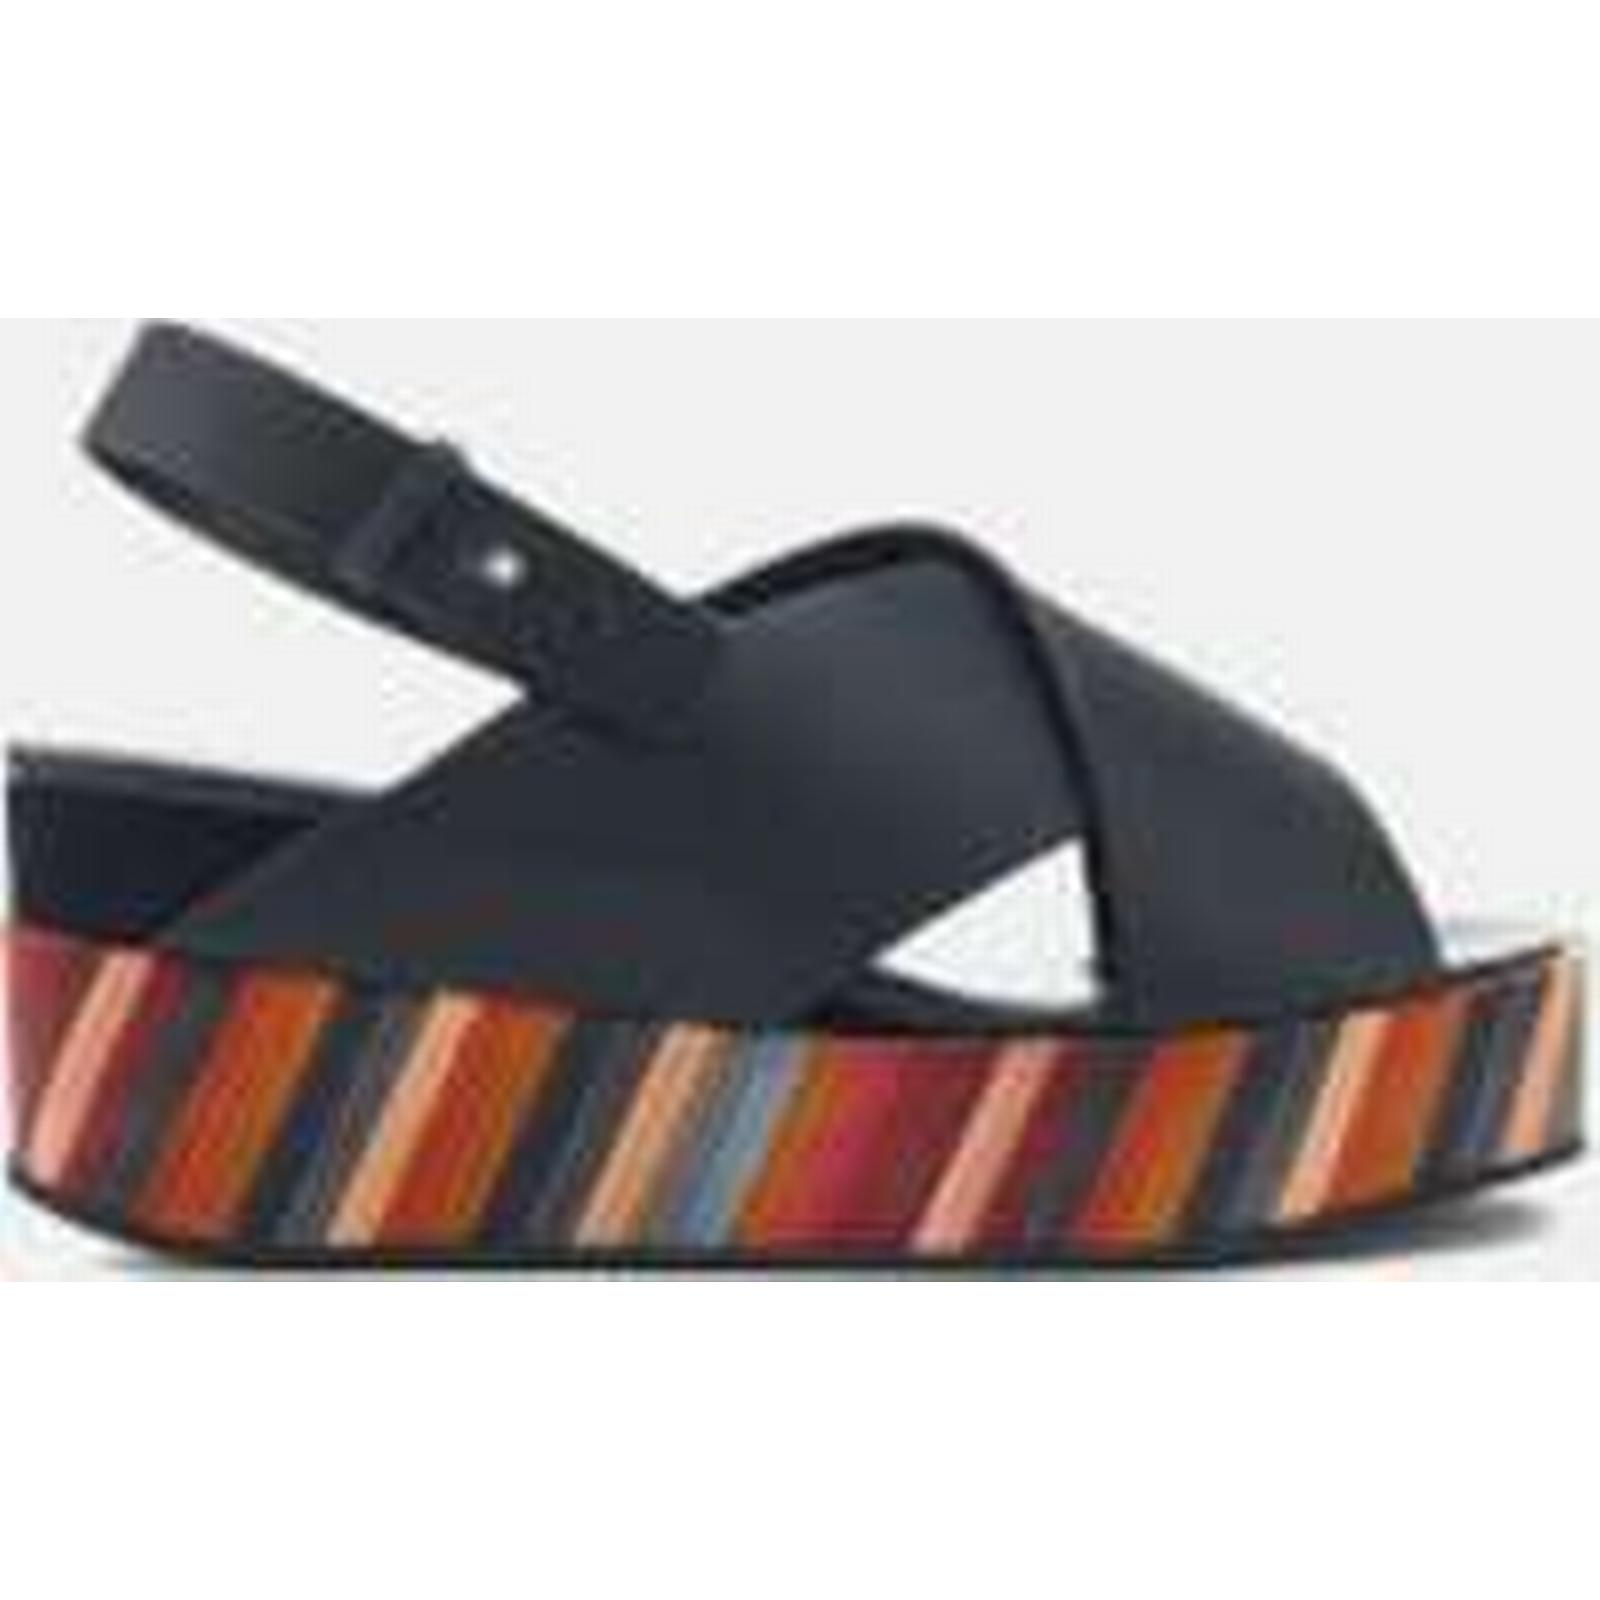 Paul Smith Women's Noe Swirl Flatform UK Sandals - Black - UK Flatform 4 - Black eb3782